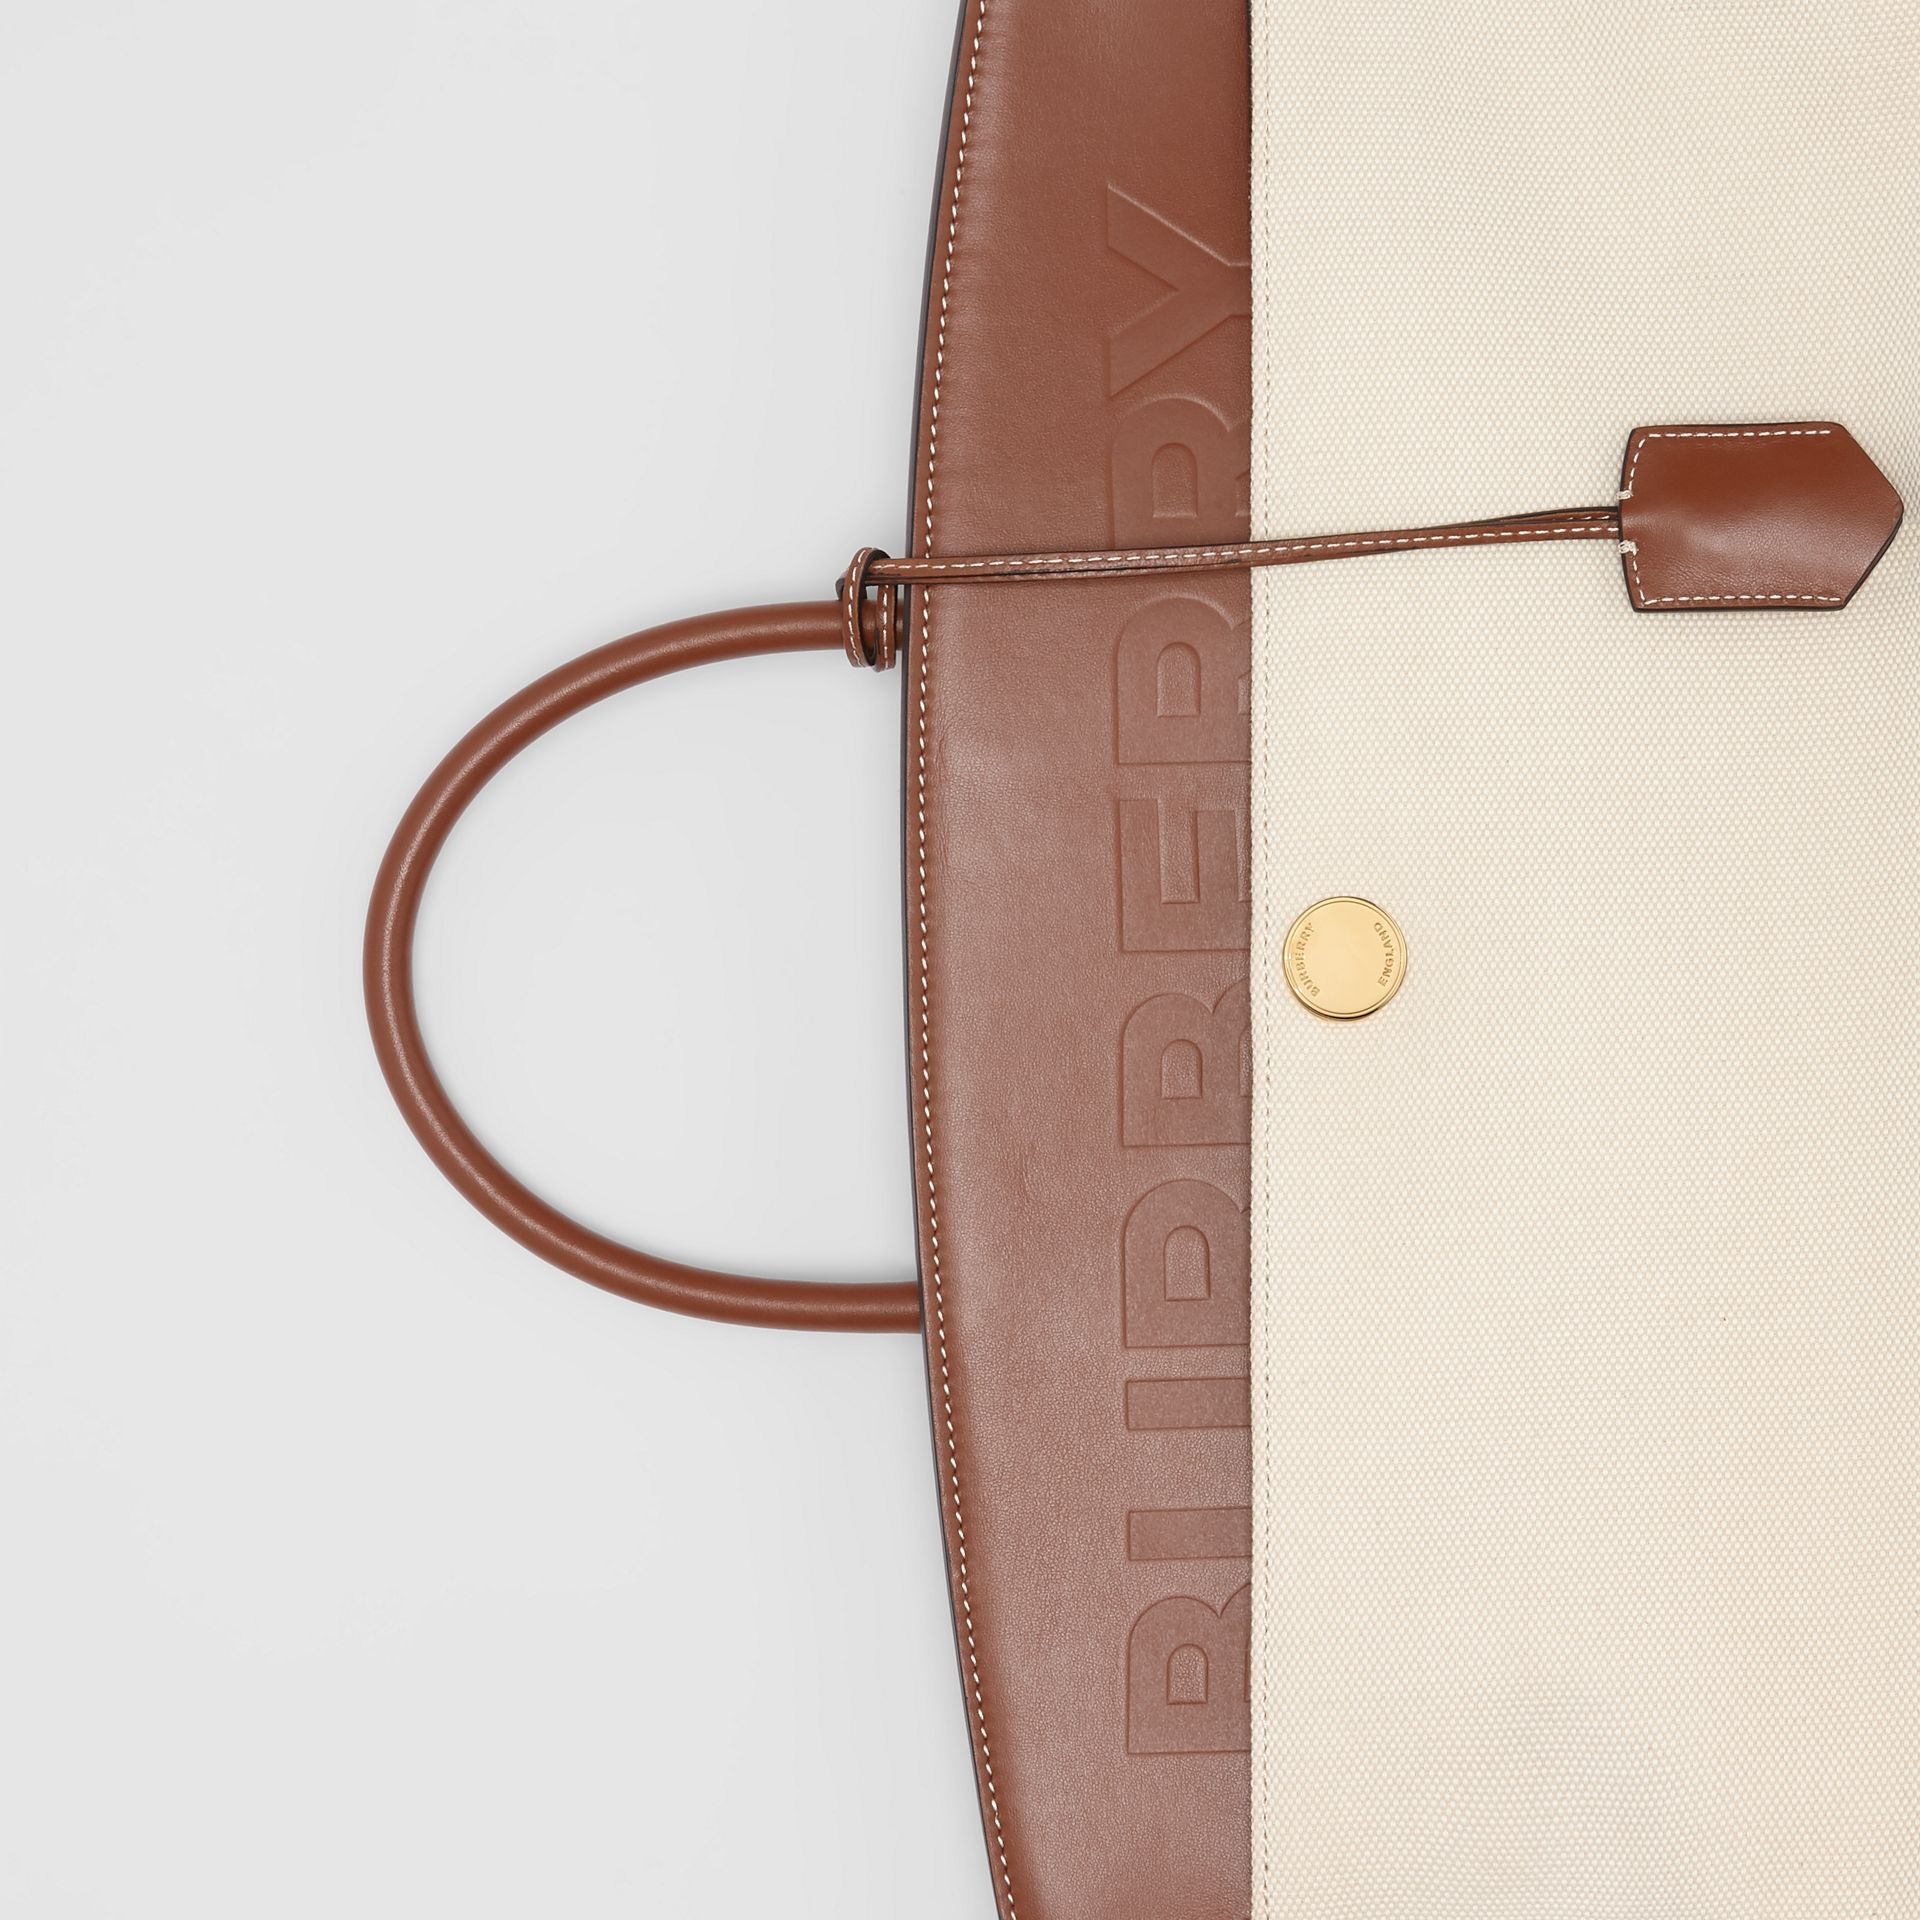 Cotton Canvas and Leather Society Top Handle Bag in Natural/malt Brown - Women | Burberry Australia - gallery image 1